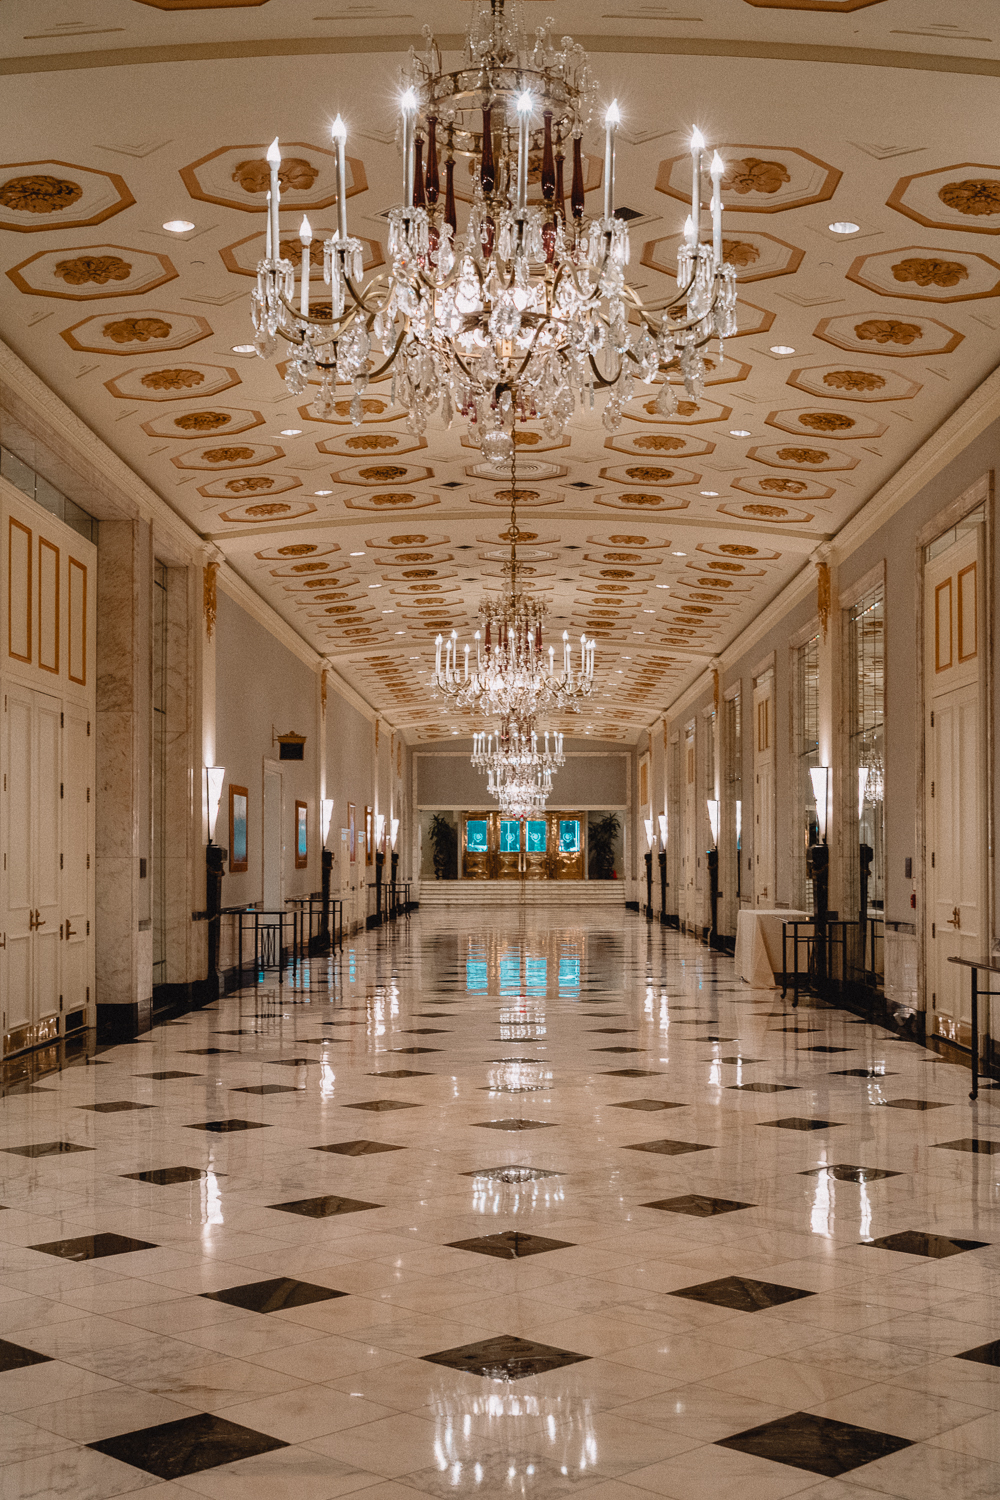 The grand hall that leads to the Mayflower's stunning ballrooms.